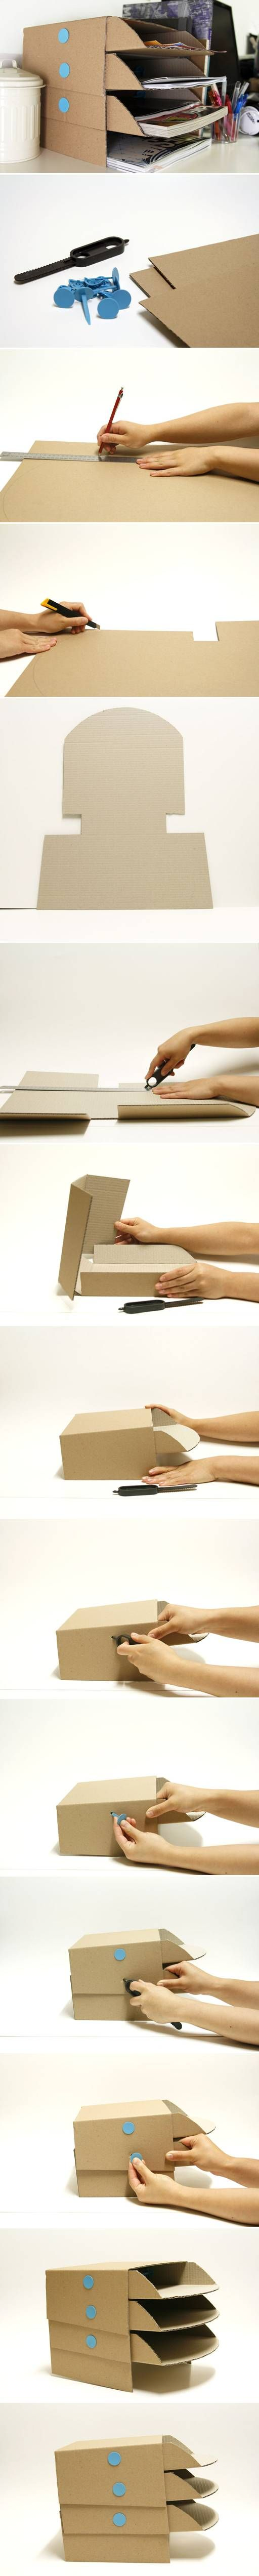 DIY Cardboard Desk Tray DIY Projects | UsefulDIY.com